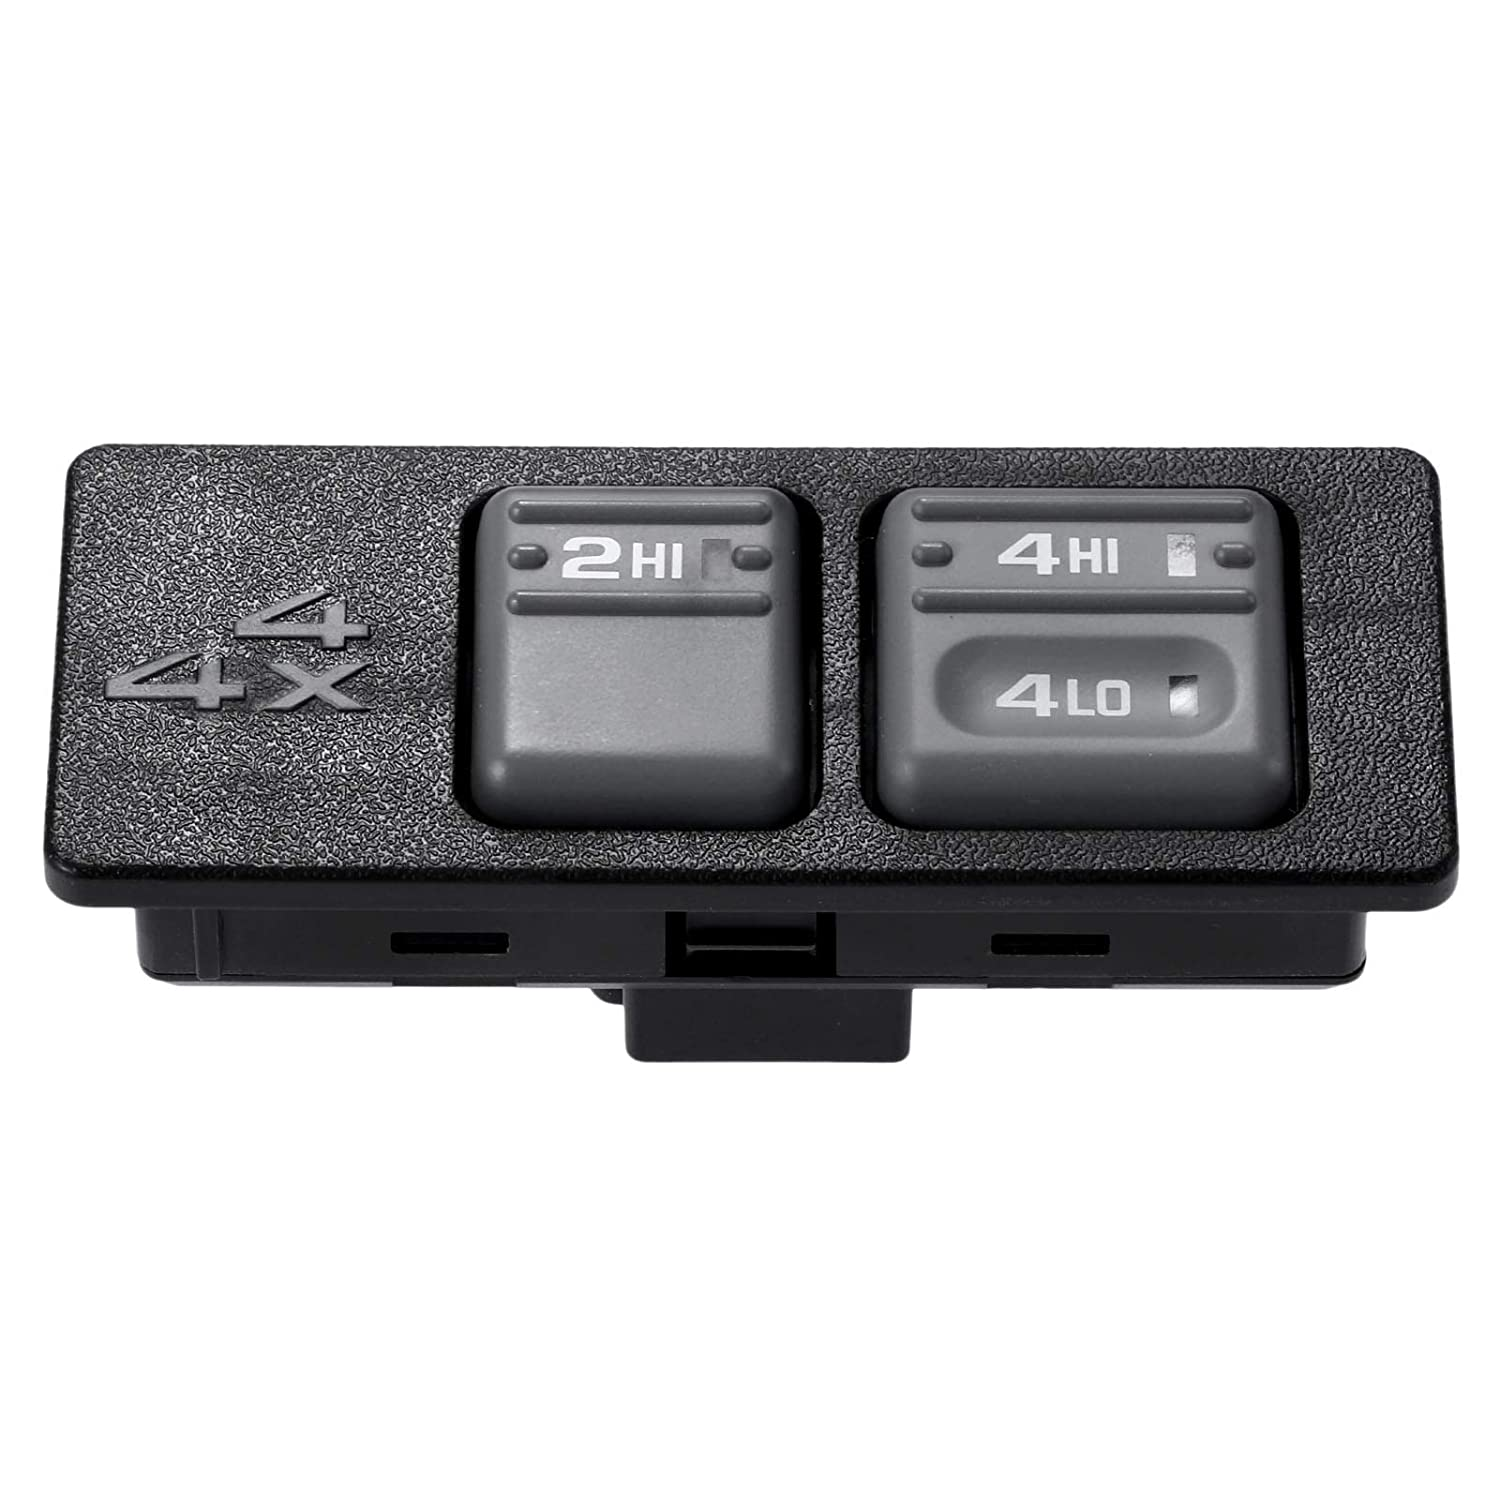 4 Wheel Drive Selector Switch Button Max 58% OFF New mail order 4WD S Push selector